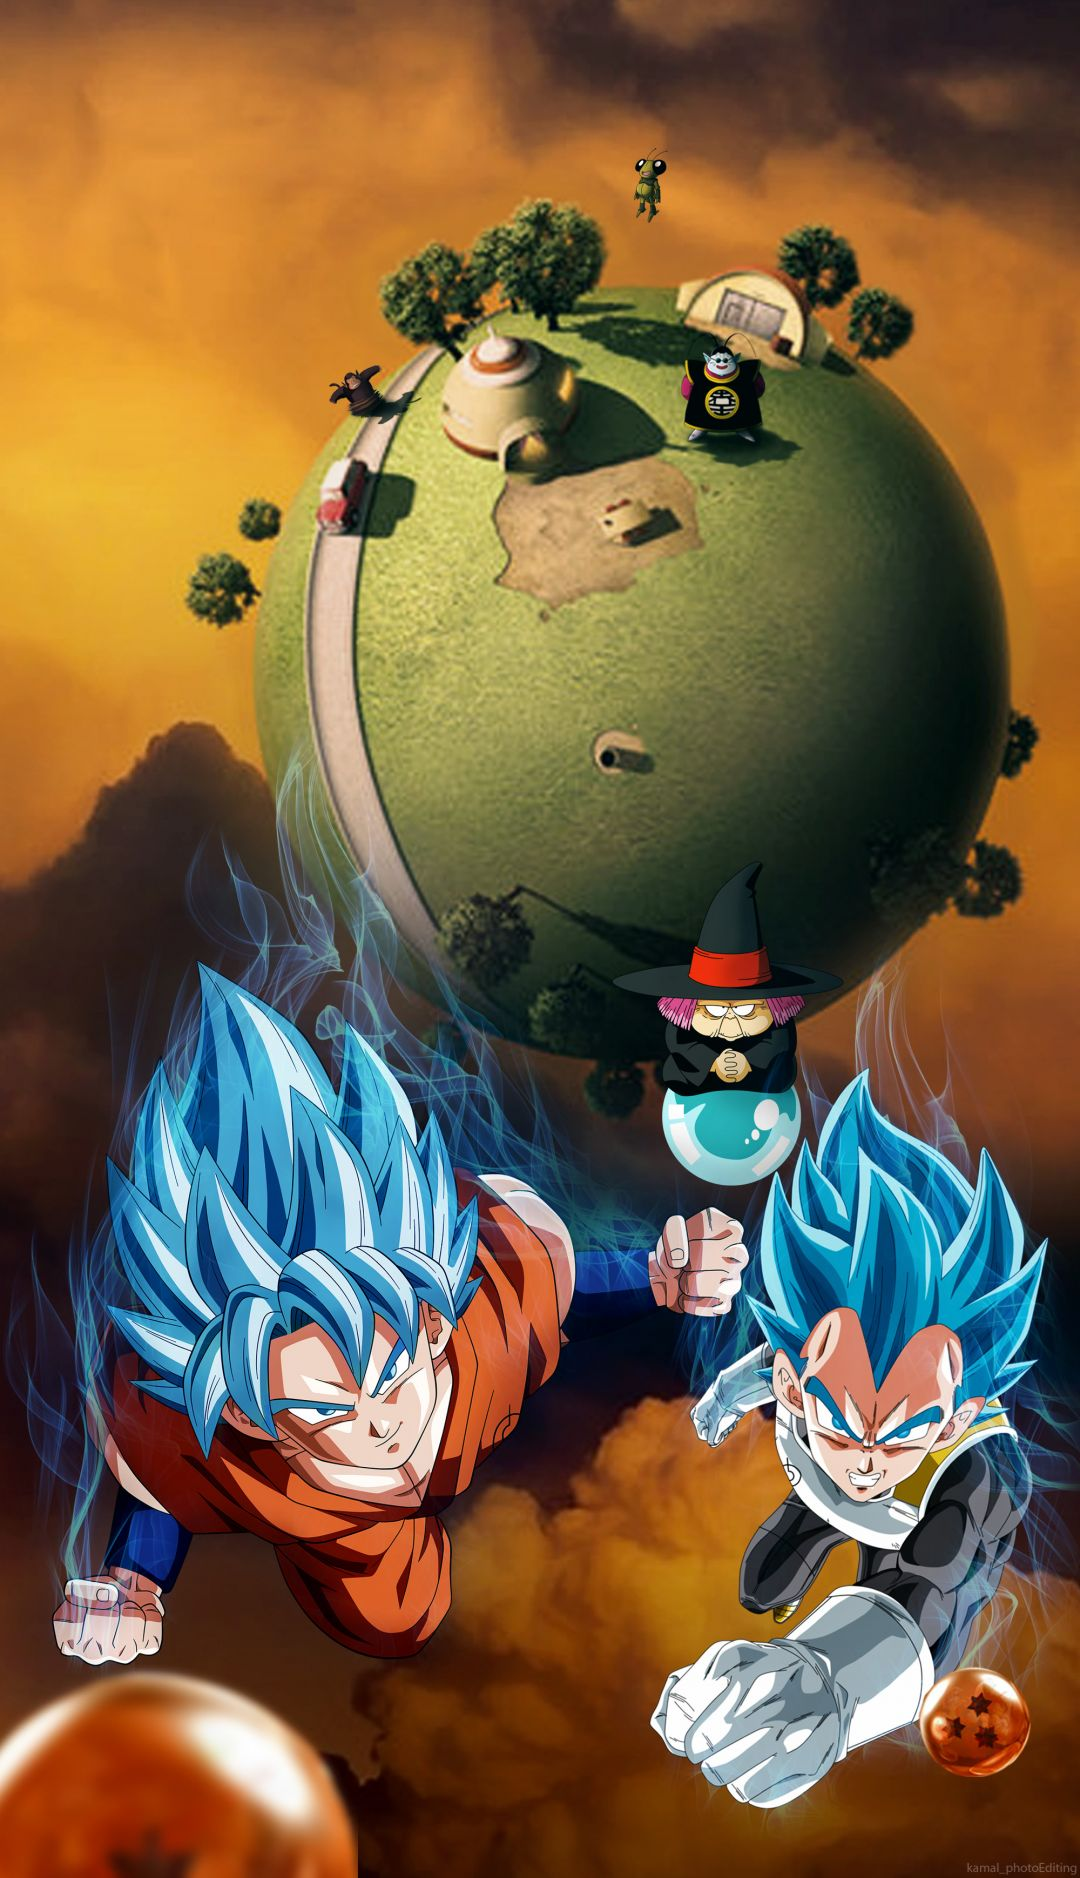 125 Dragon Ball Z Phone Android Iphone Desktop Hd Backgrounds Wallpapers 1080p 4k 2000x3477 2020